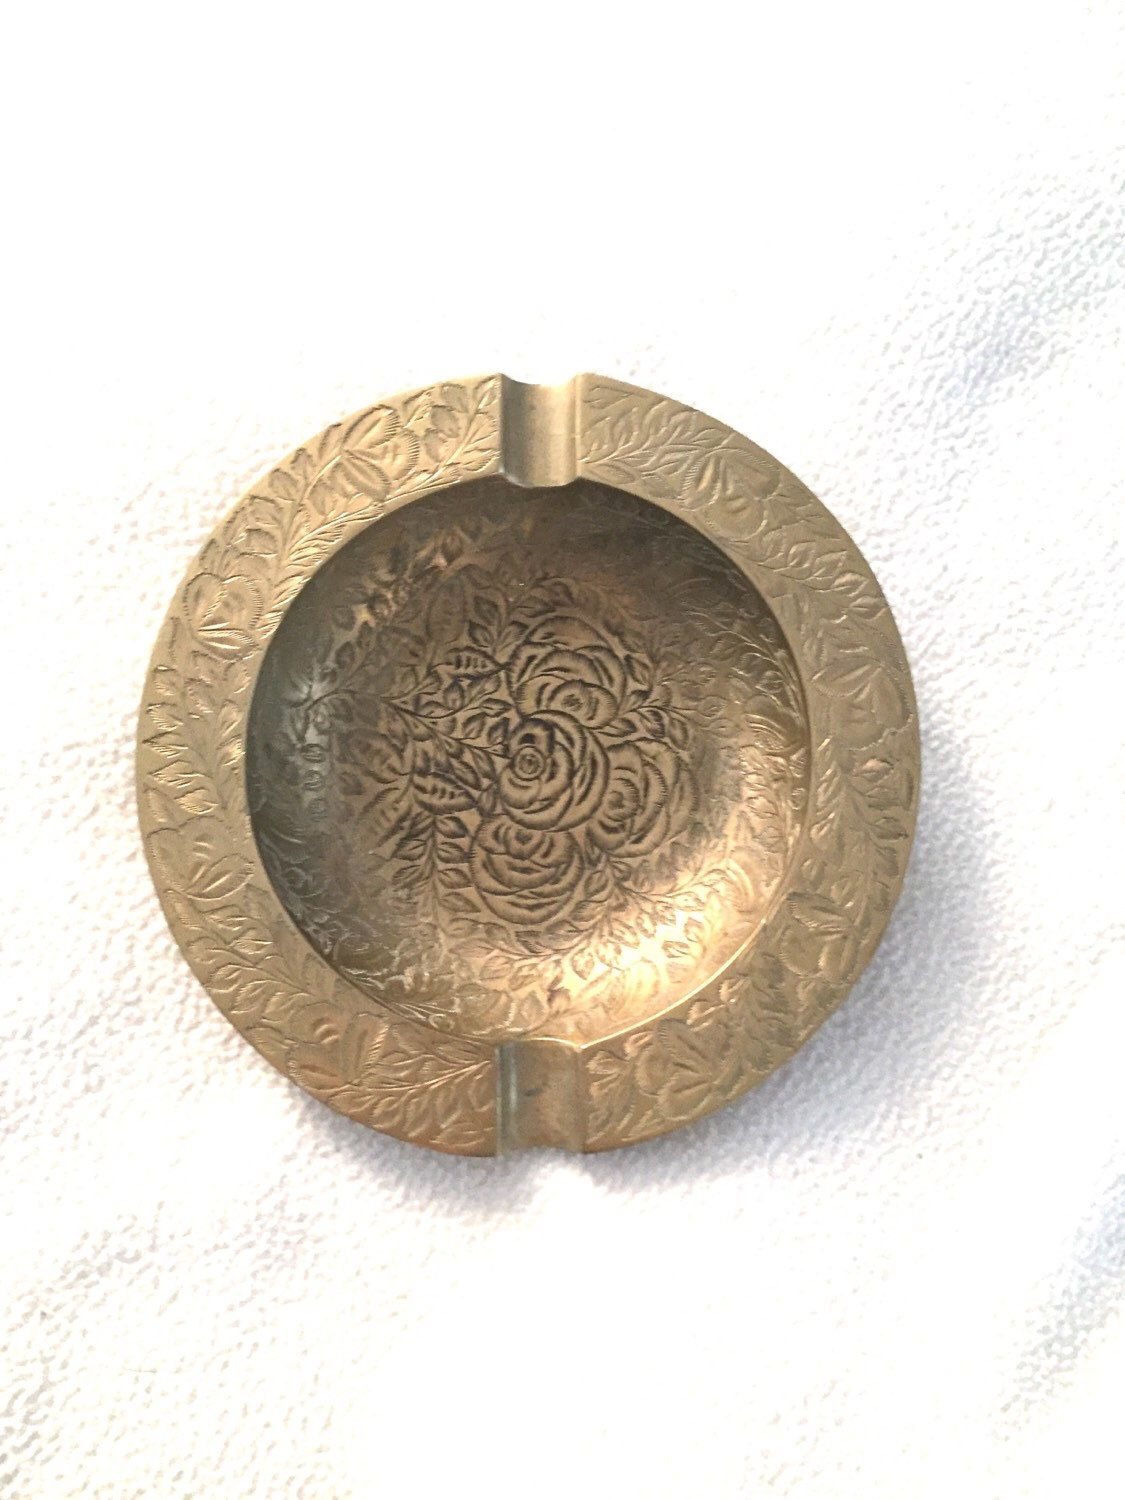 Vintage brass teapot ashtray made in india ornate etched